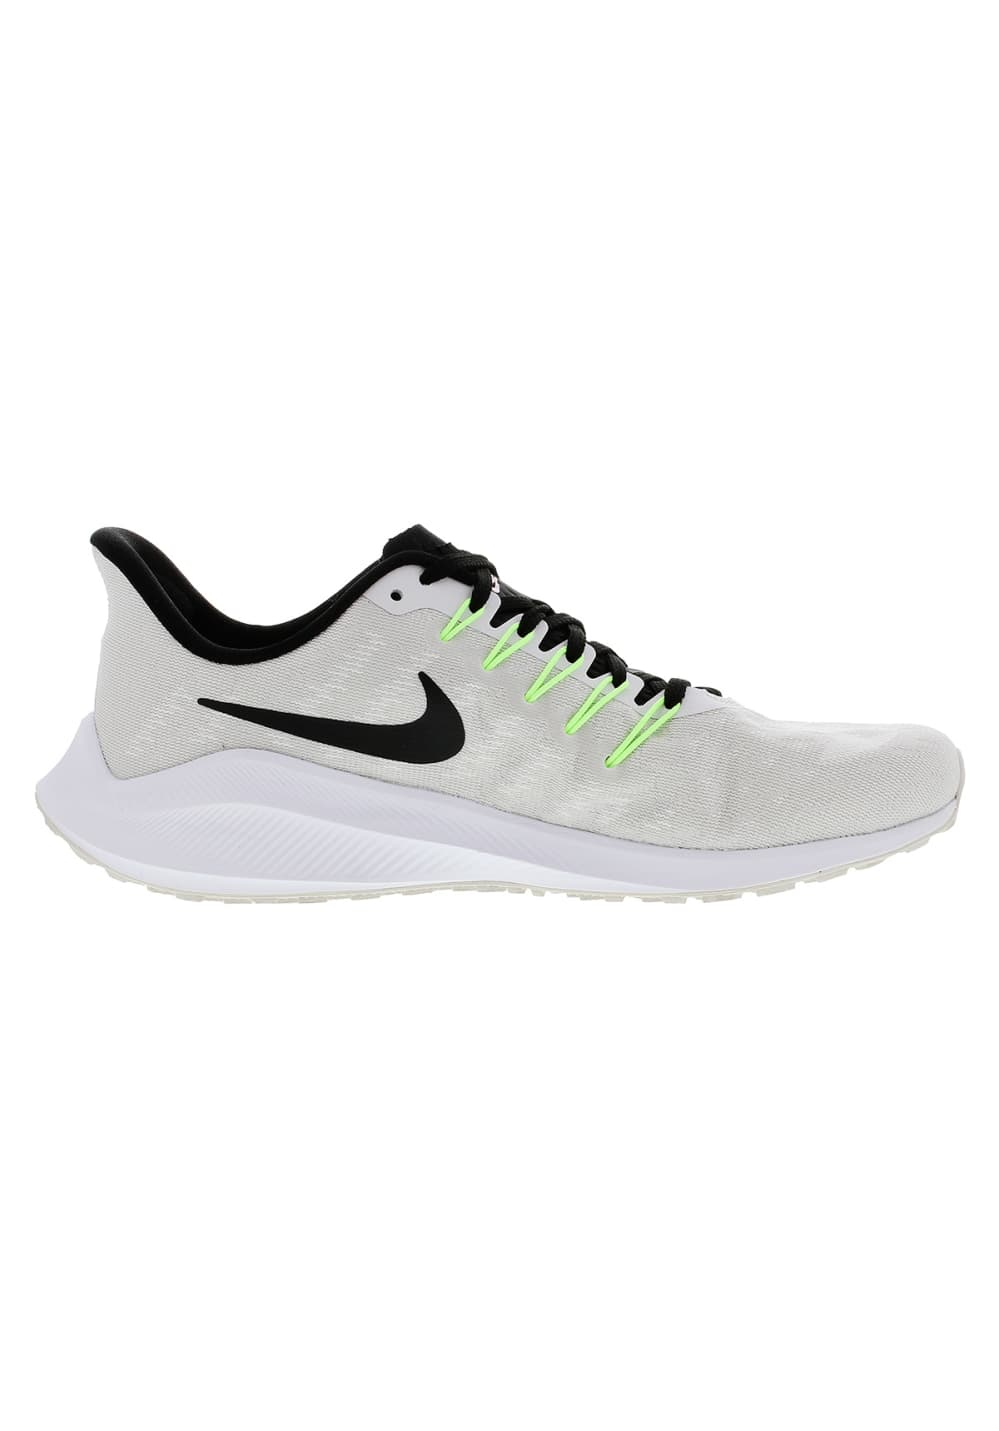 595a866bd1b762 Next. -60%. Nike. Air Zoom Vomero 15 - Running shoes for Women. Regular  Price  ...